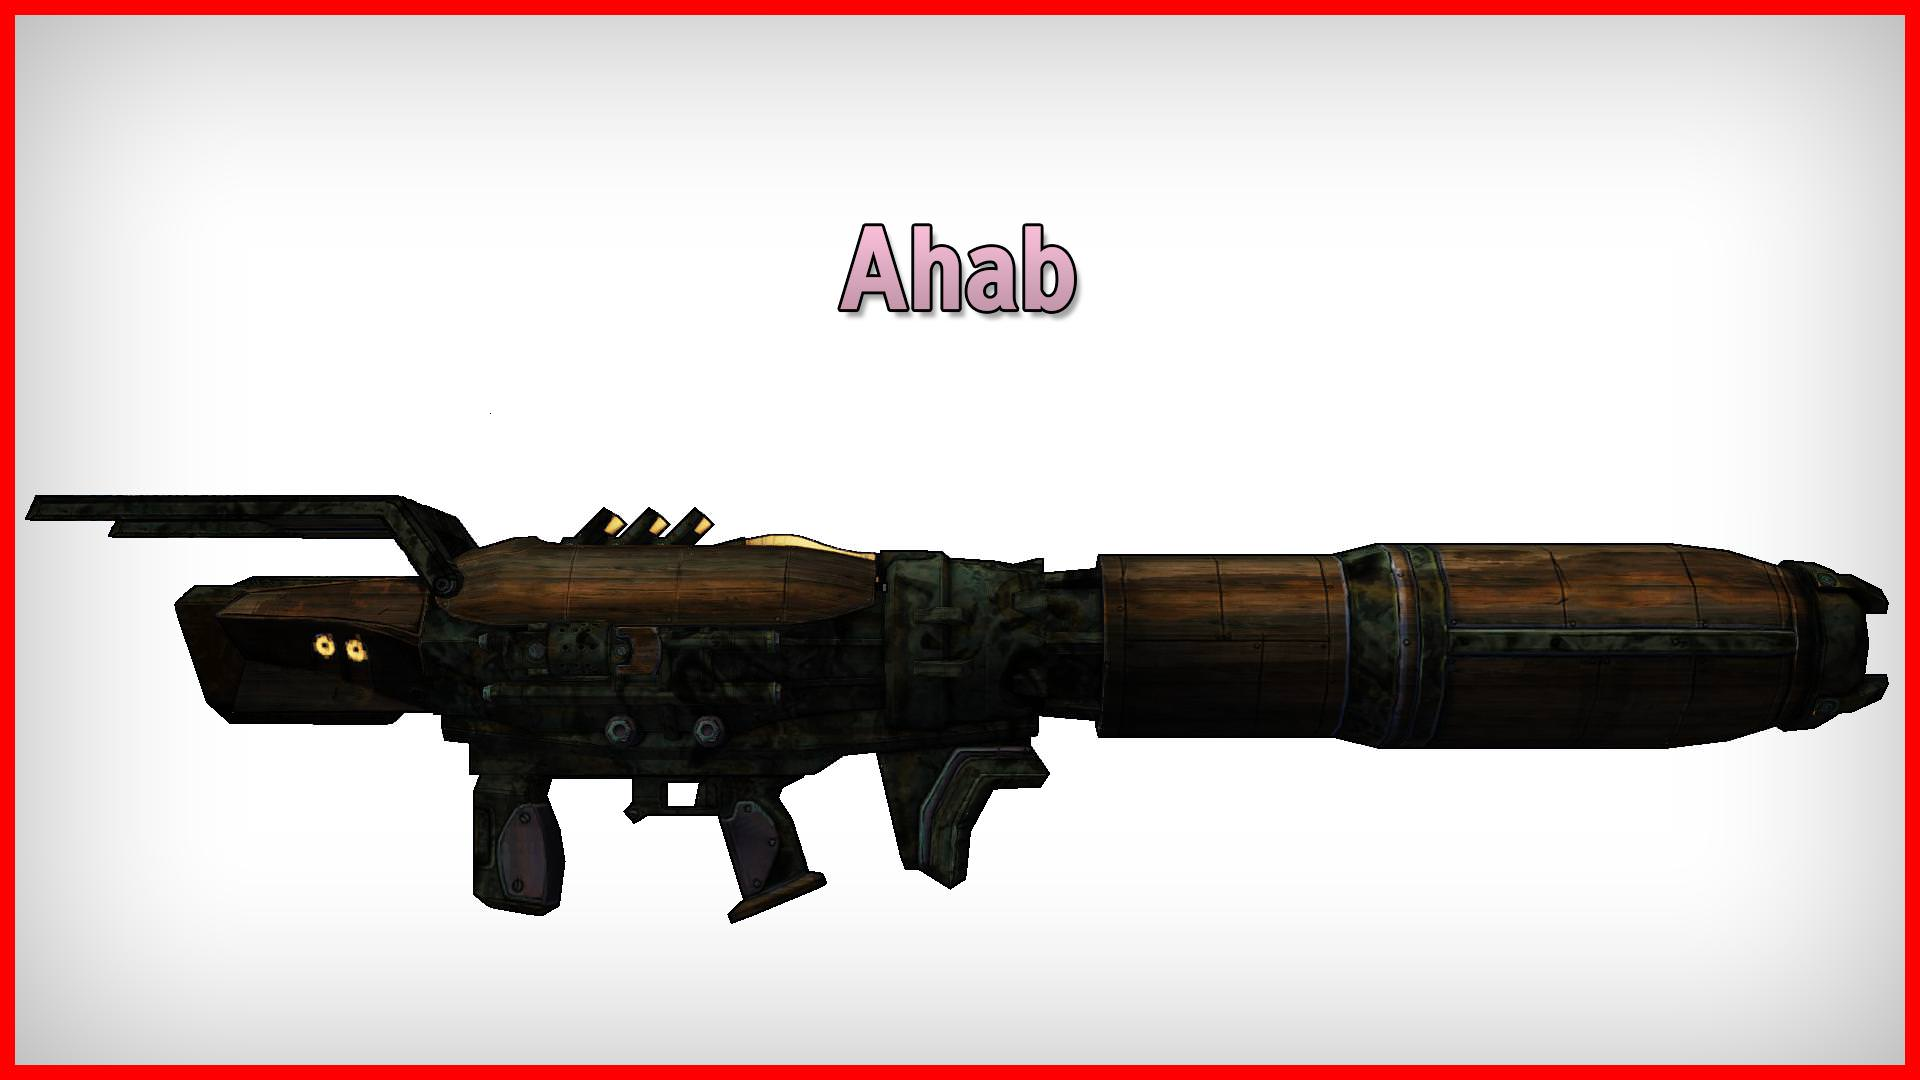 BLCMods/Borderlands 2 mods/PsychoPatate/Skins - Weapons/Ahab